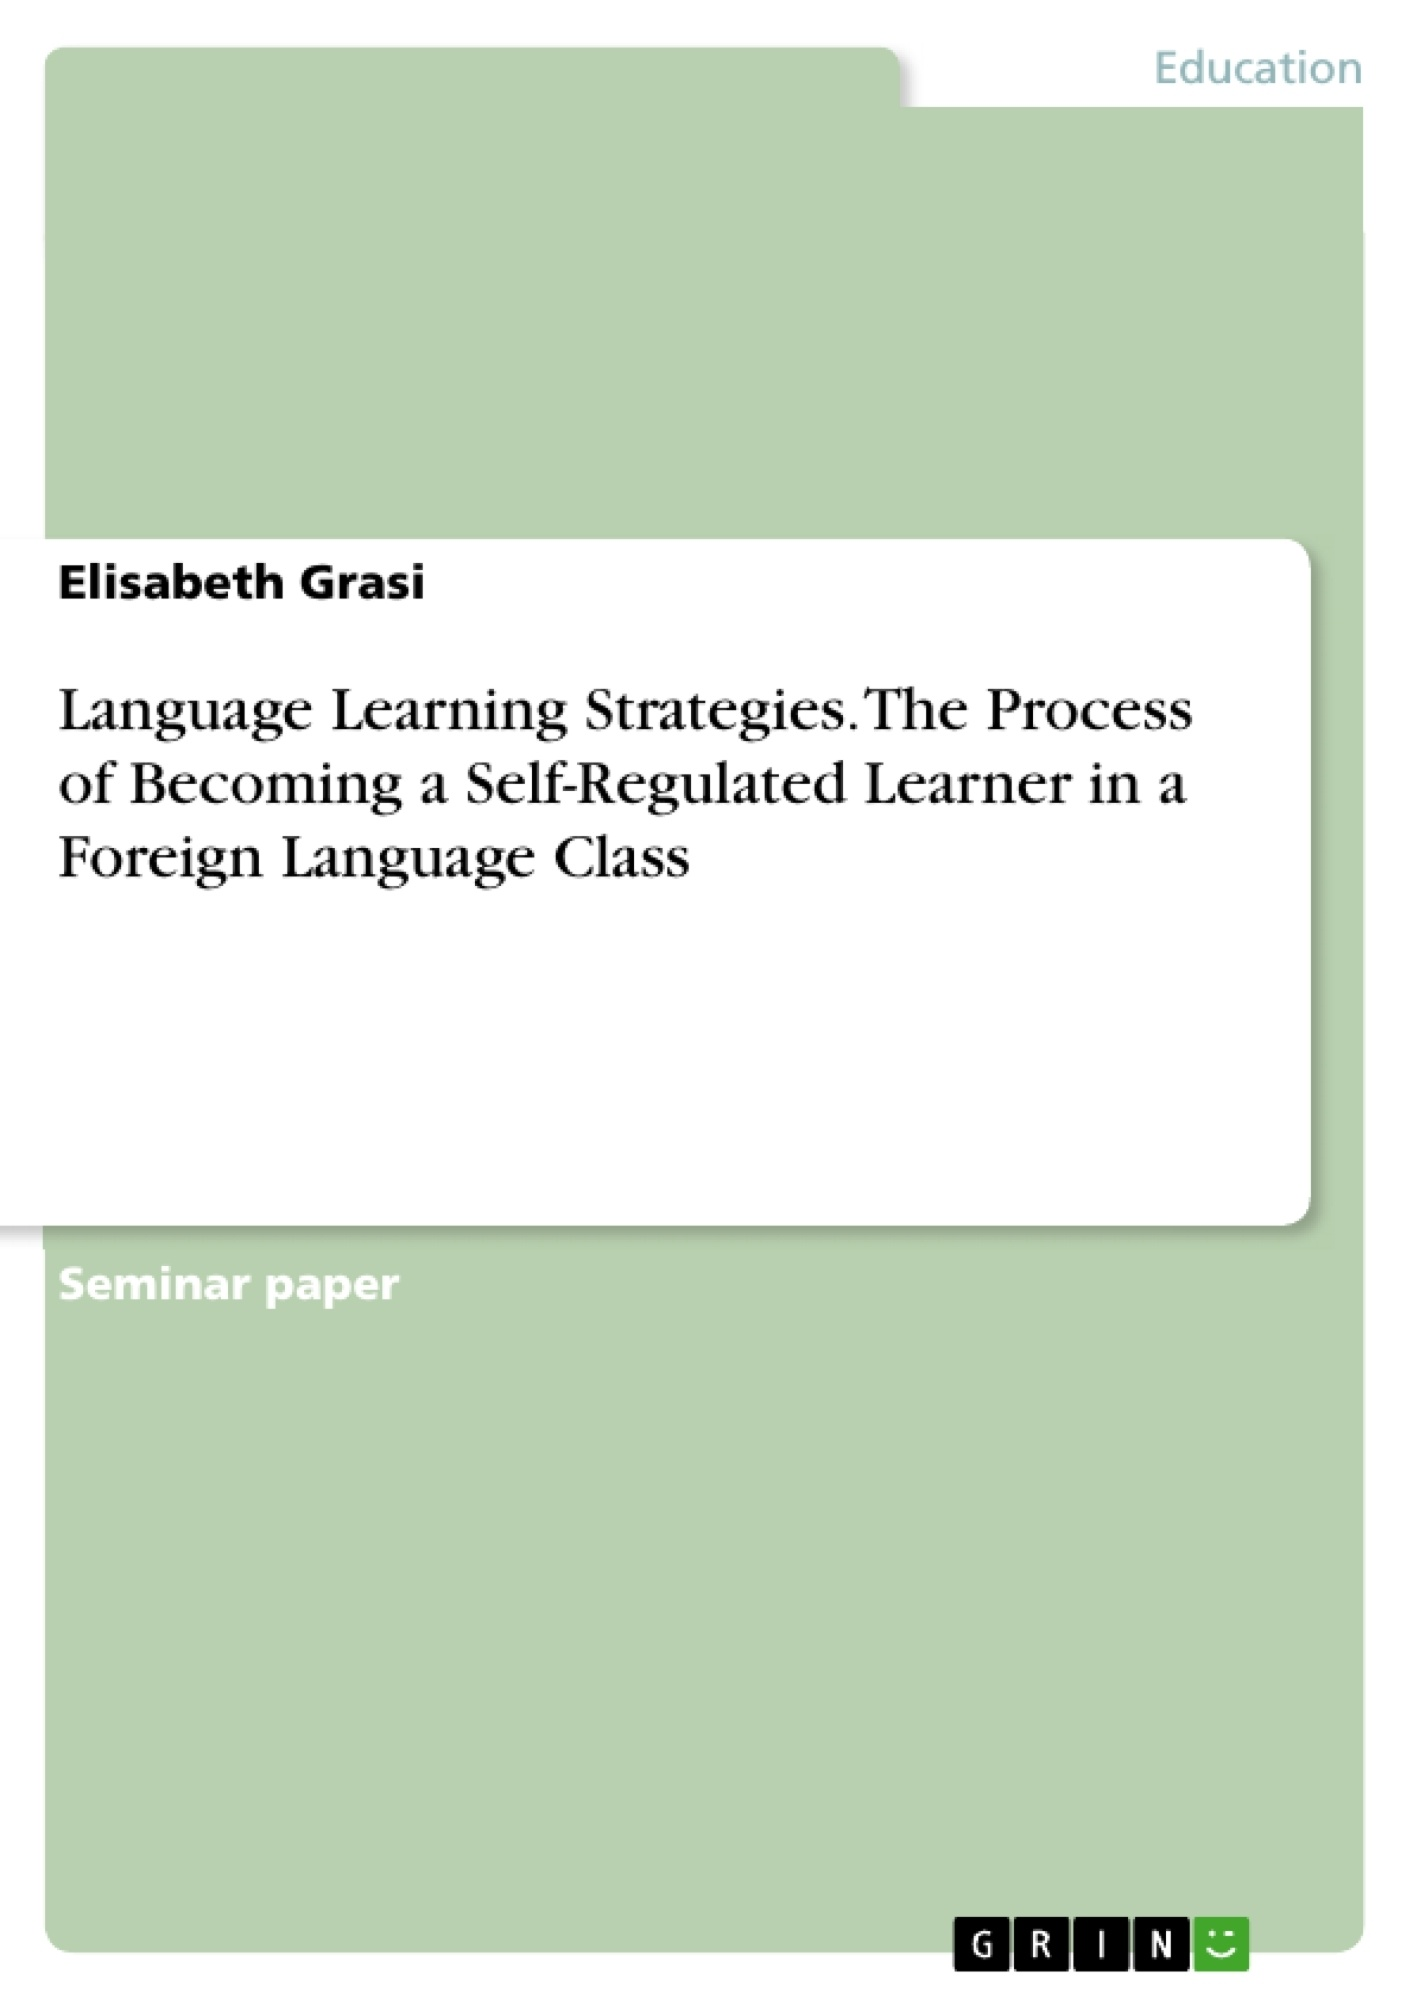 Title: Language Learning Strategies. The Process of Becoming a Self-Regulated Learner in a Foreign Language Class